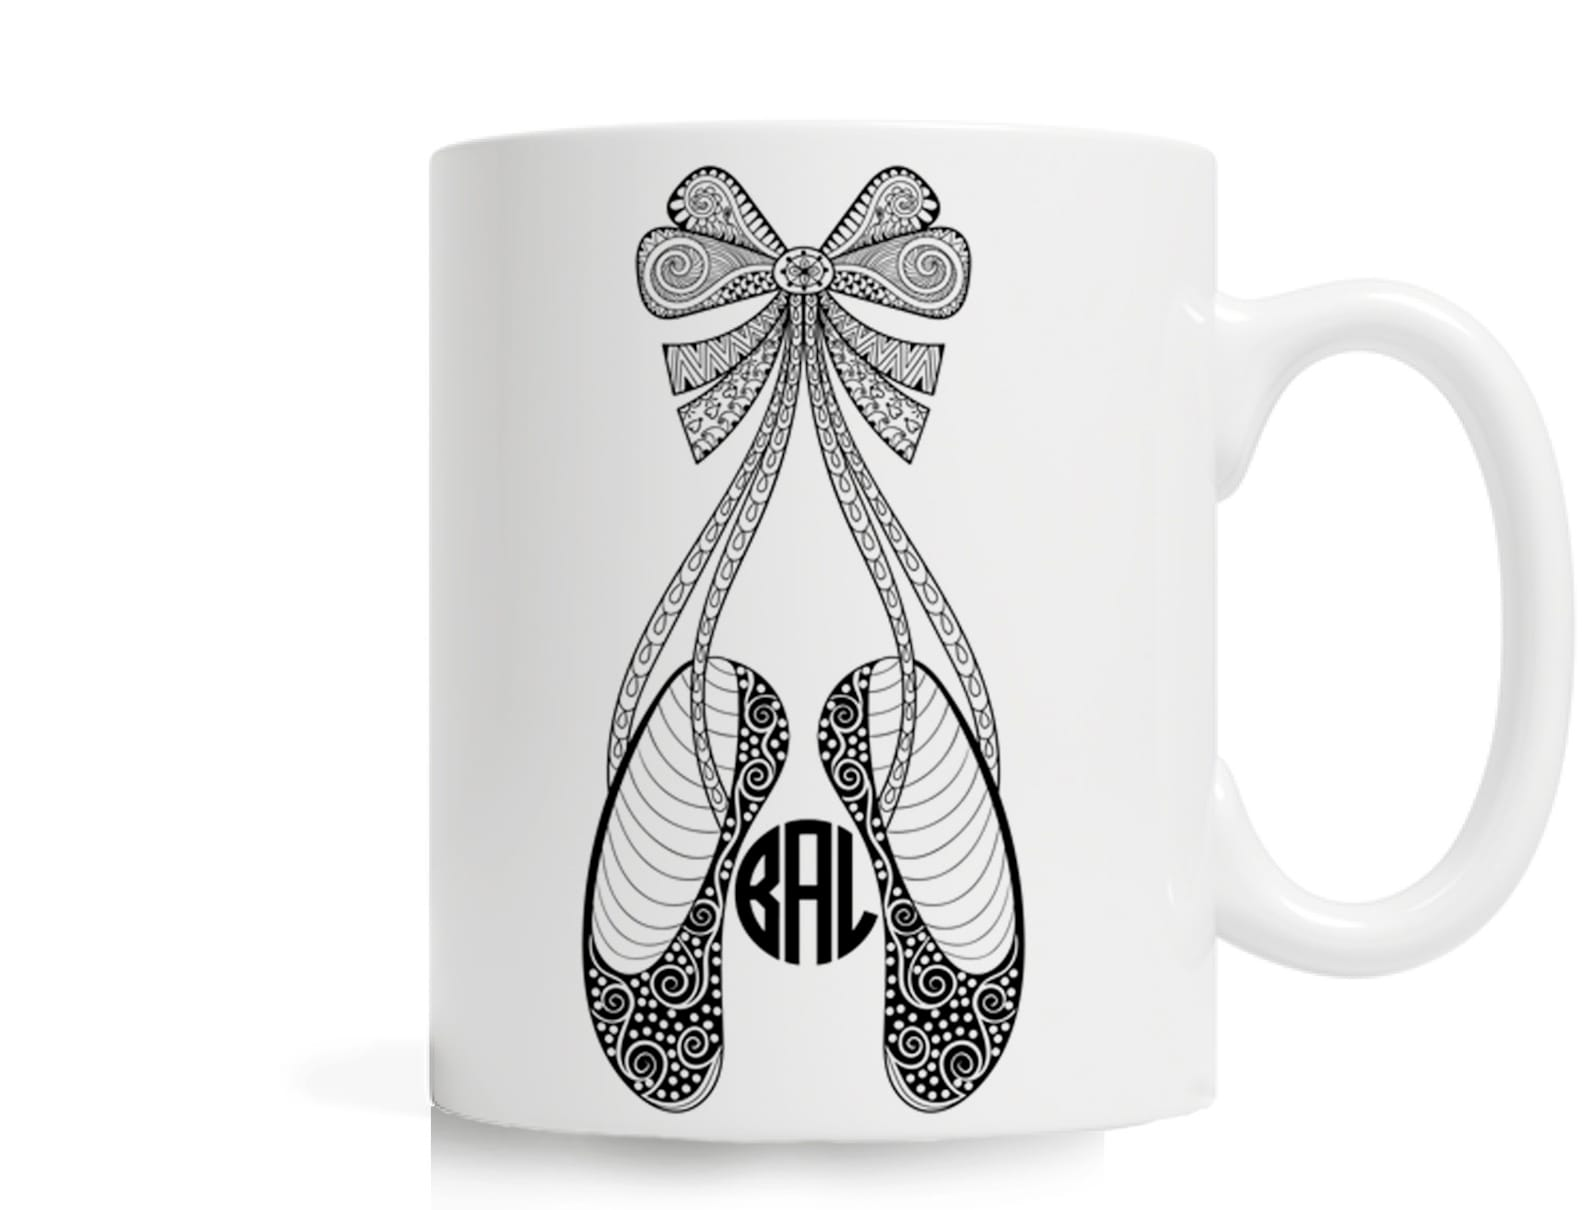 personalized mug, 11 oz ceramic mug, custom mug, intricate drawing, ballet shoes, ballerina shoes, ballerina, delicate design, c